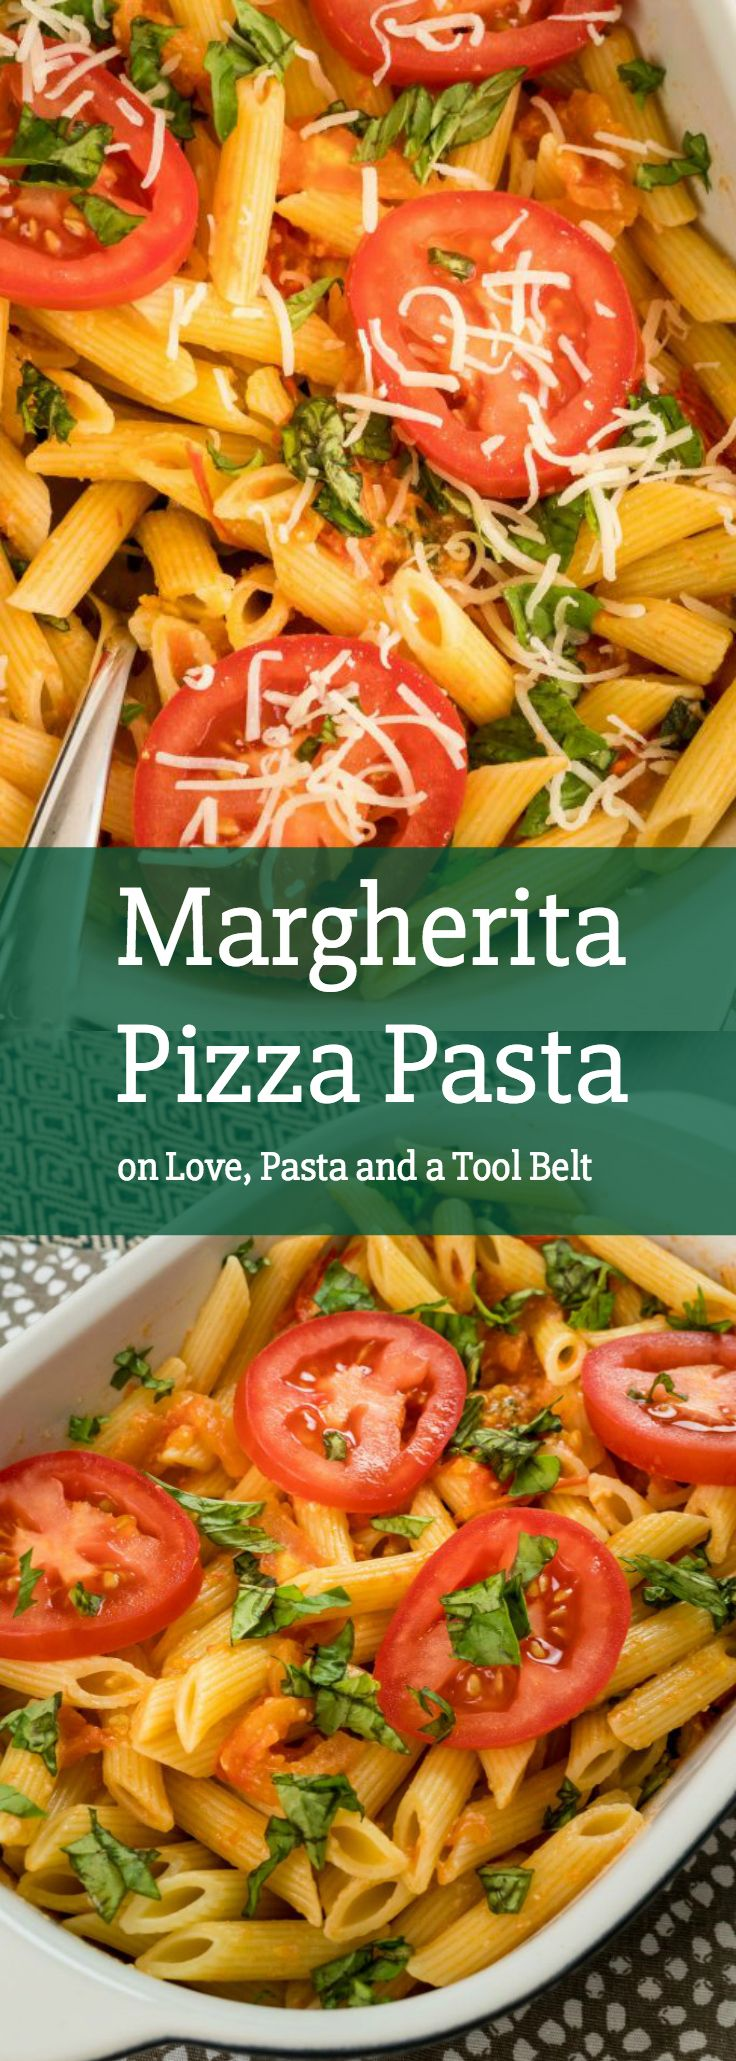 Have dinner ready in 30 minutes with this recipe for Margherita Pizza Pasta #ad